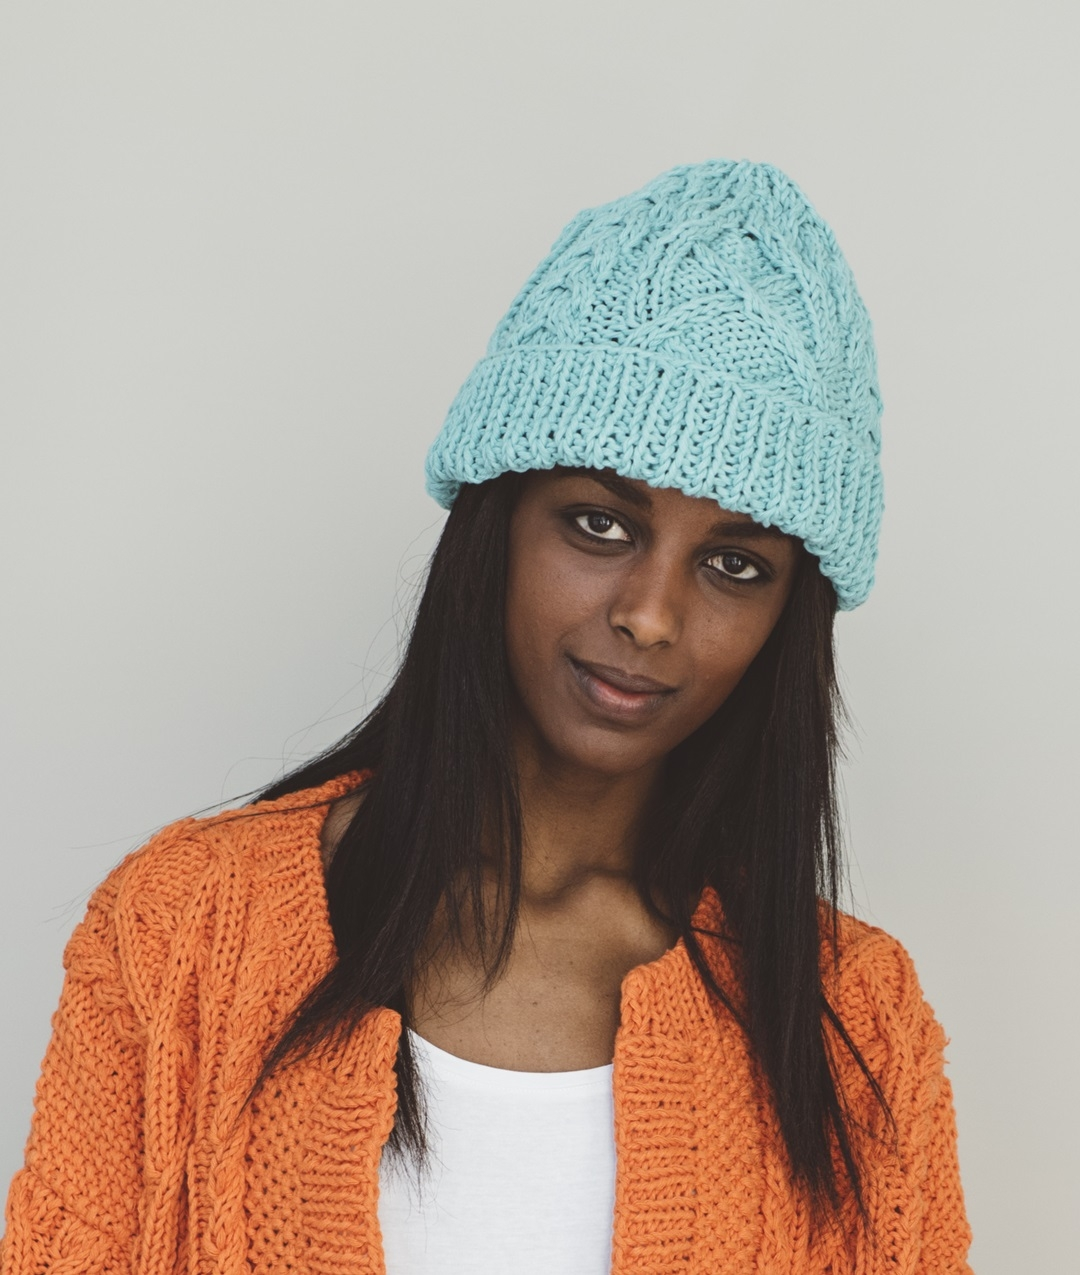 Hats and Beanies - Cotton - Dora Hat - 1